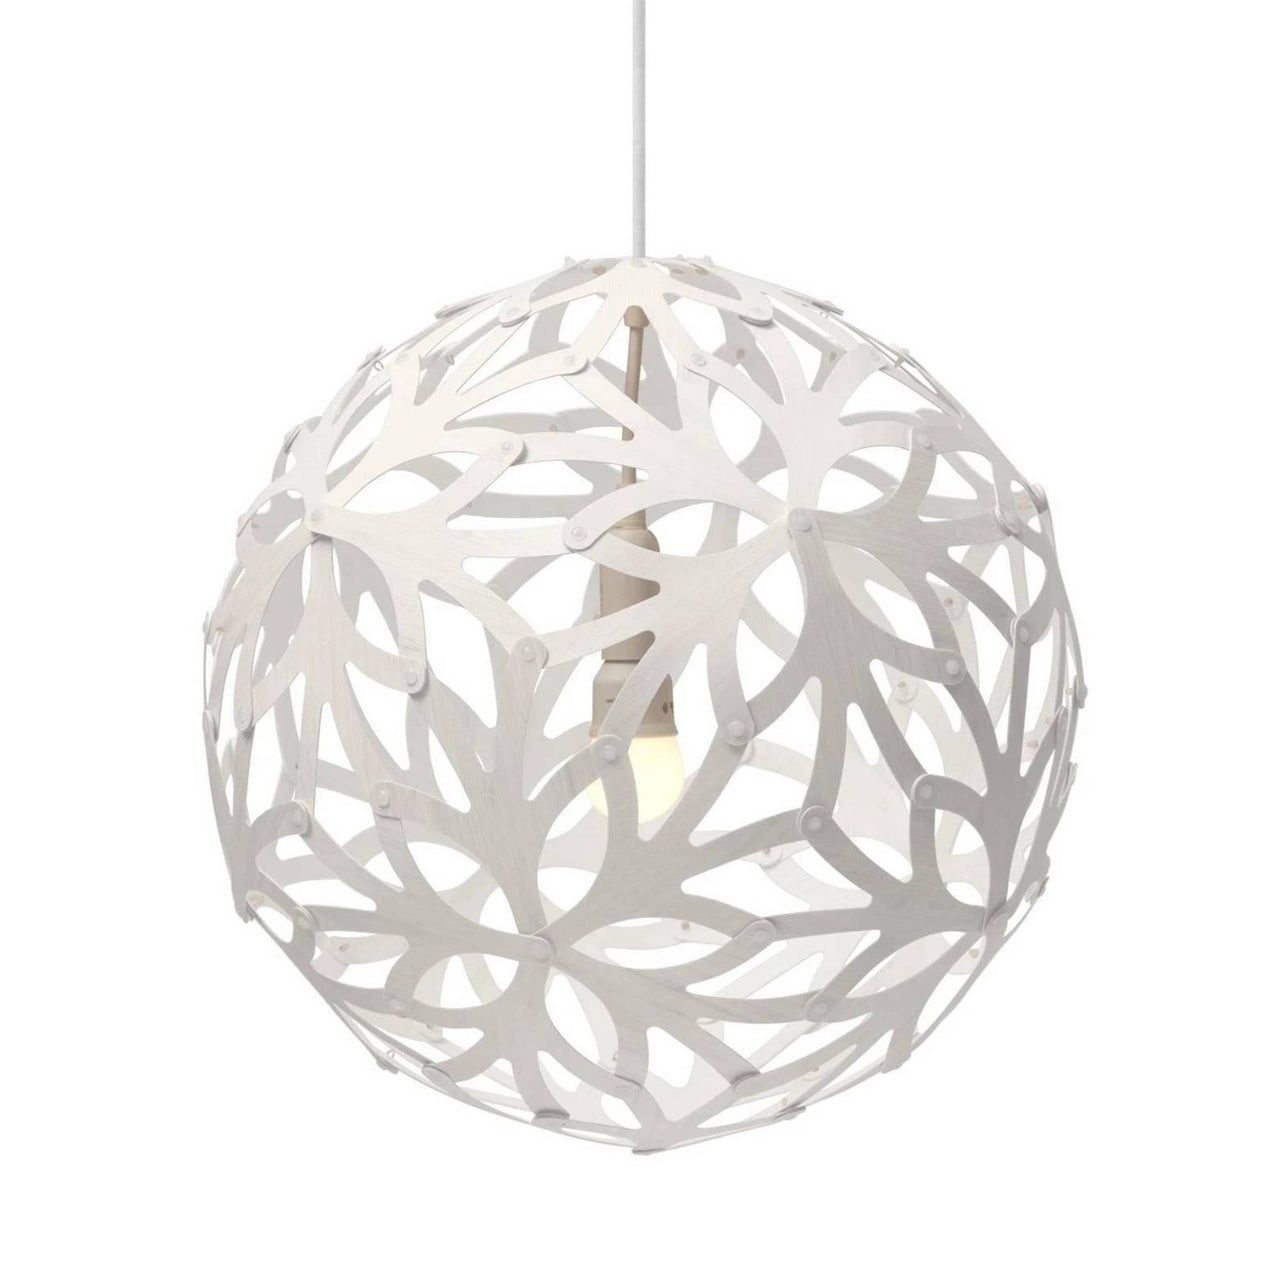 Floral Pendant Light: 800 + White Two Sides